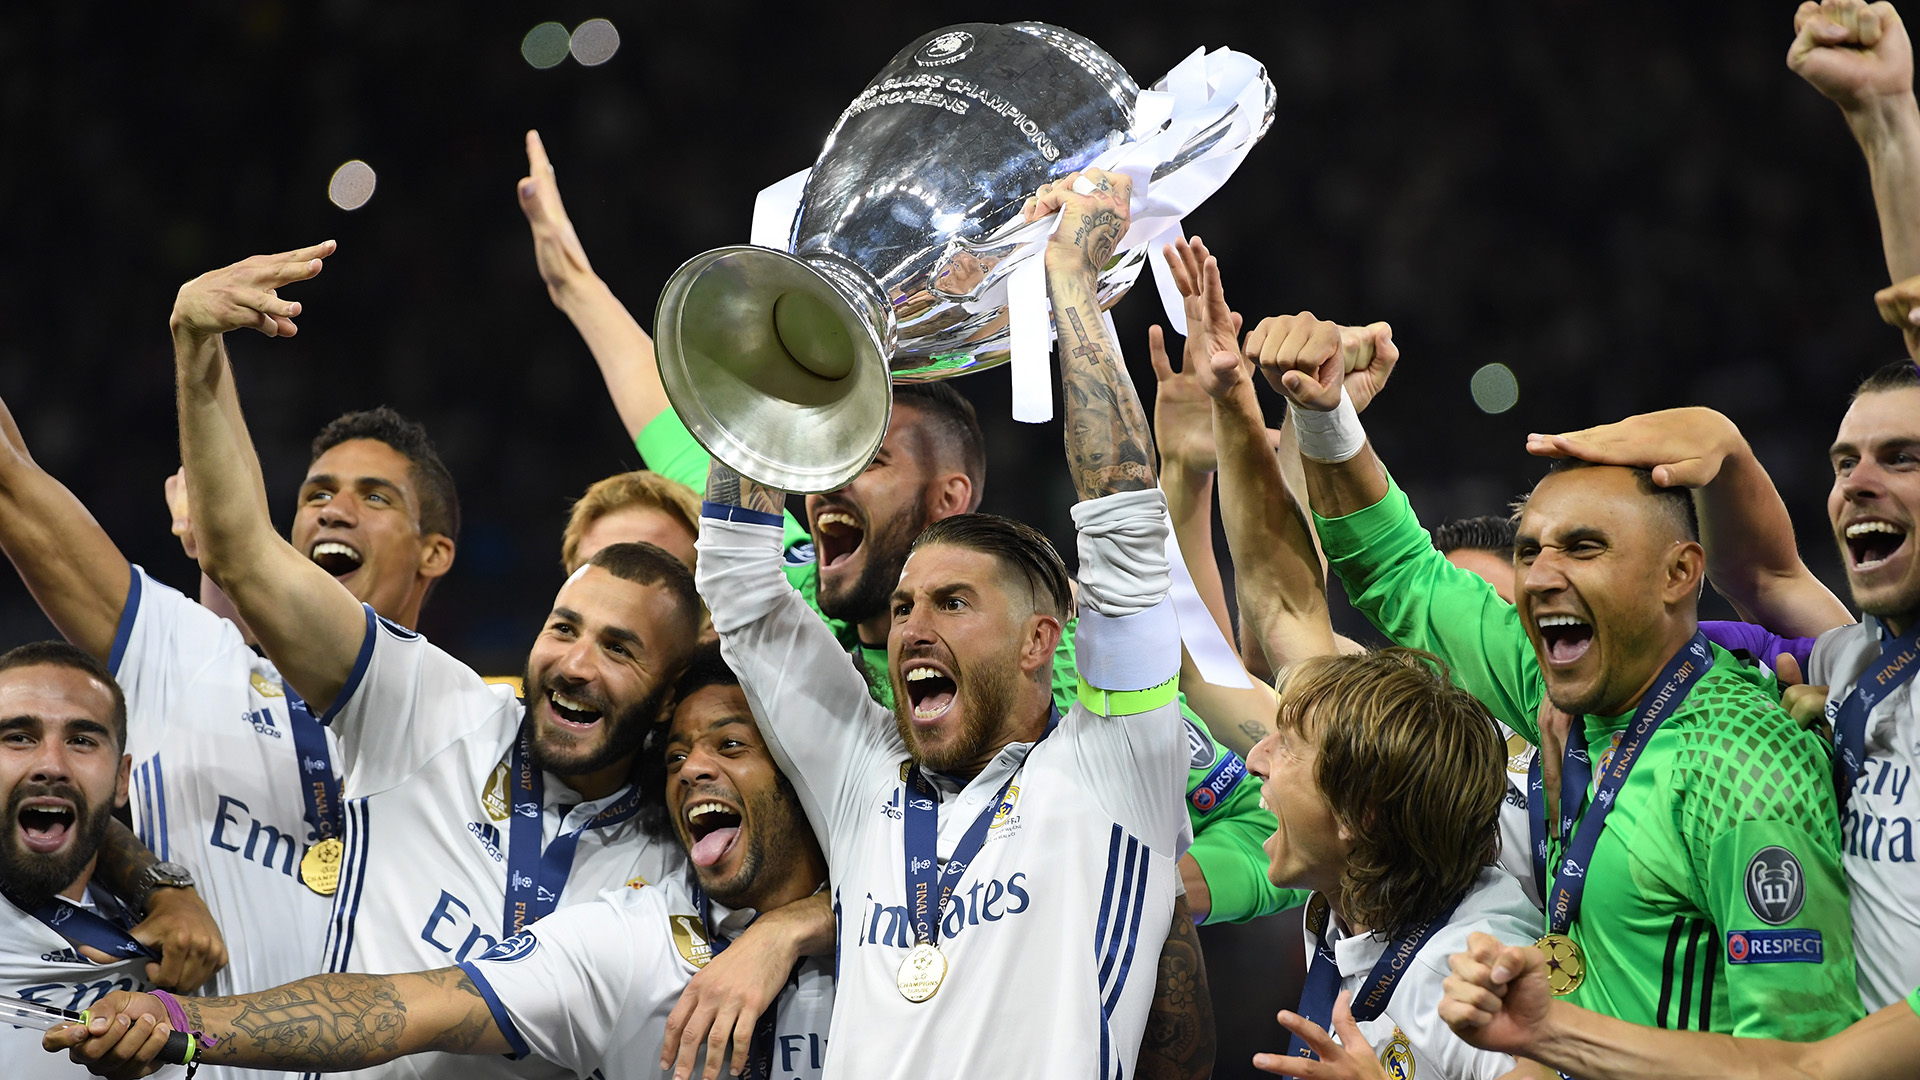 'Hala Madrid!!!' - Twitter reacts to Real Madrid winning the Champions League